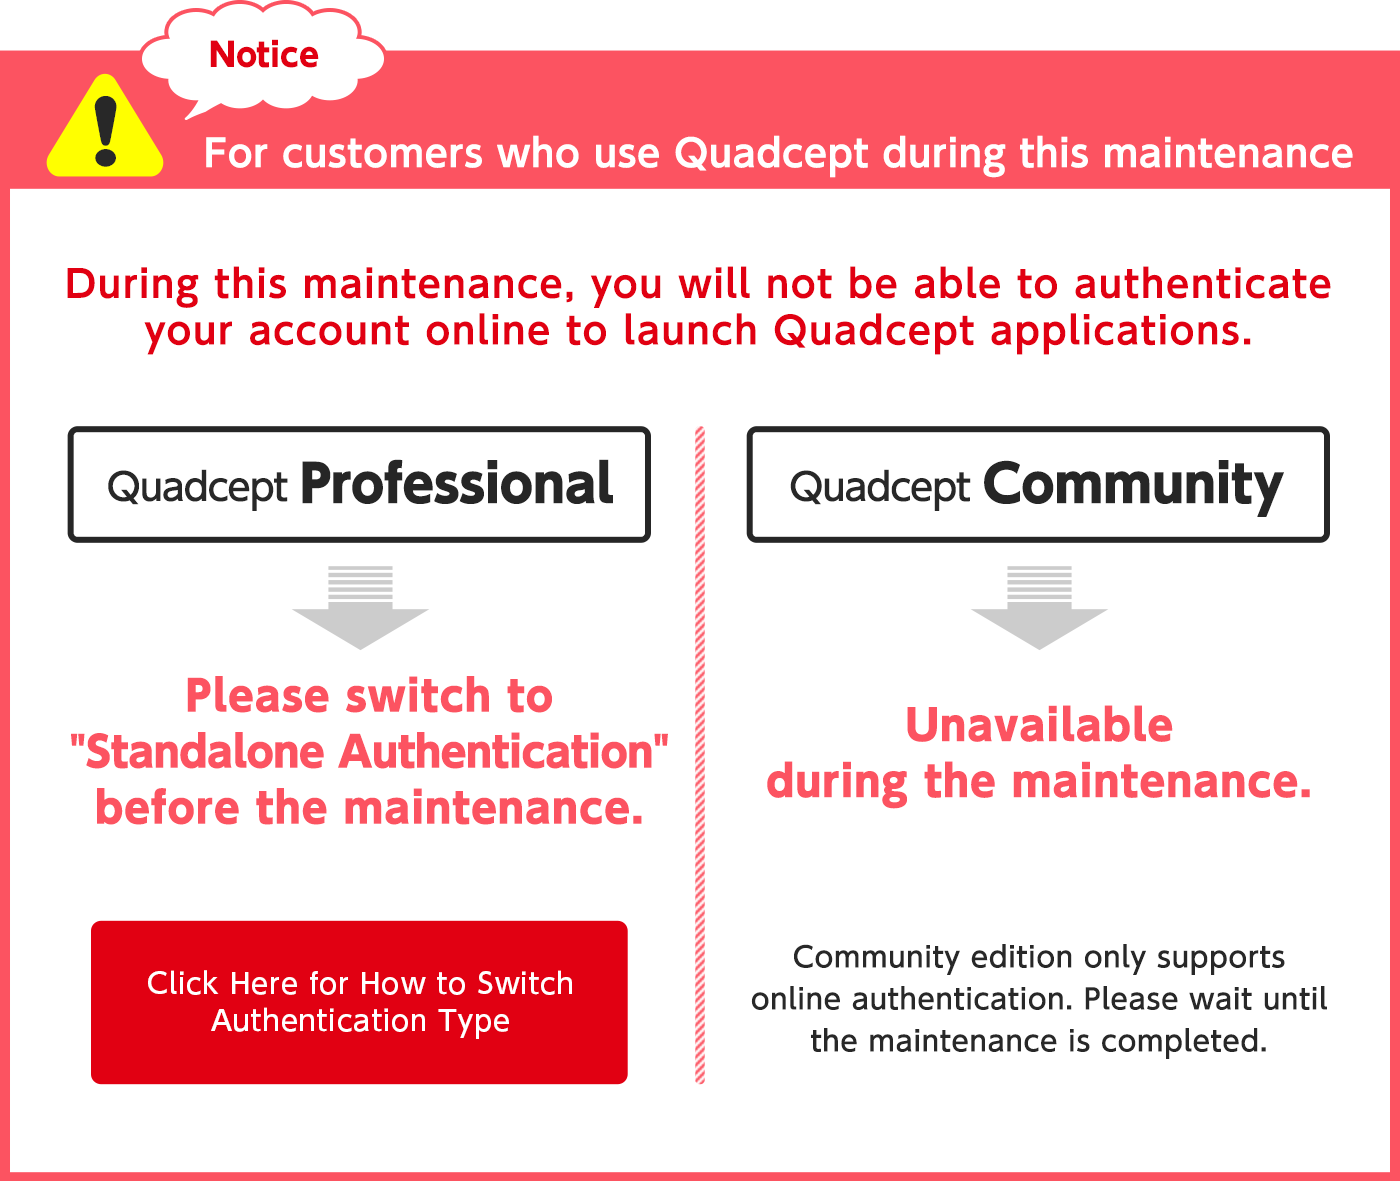 During this maintenance, you will not be able to authenticate your account online to launch Quadcept applications.